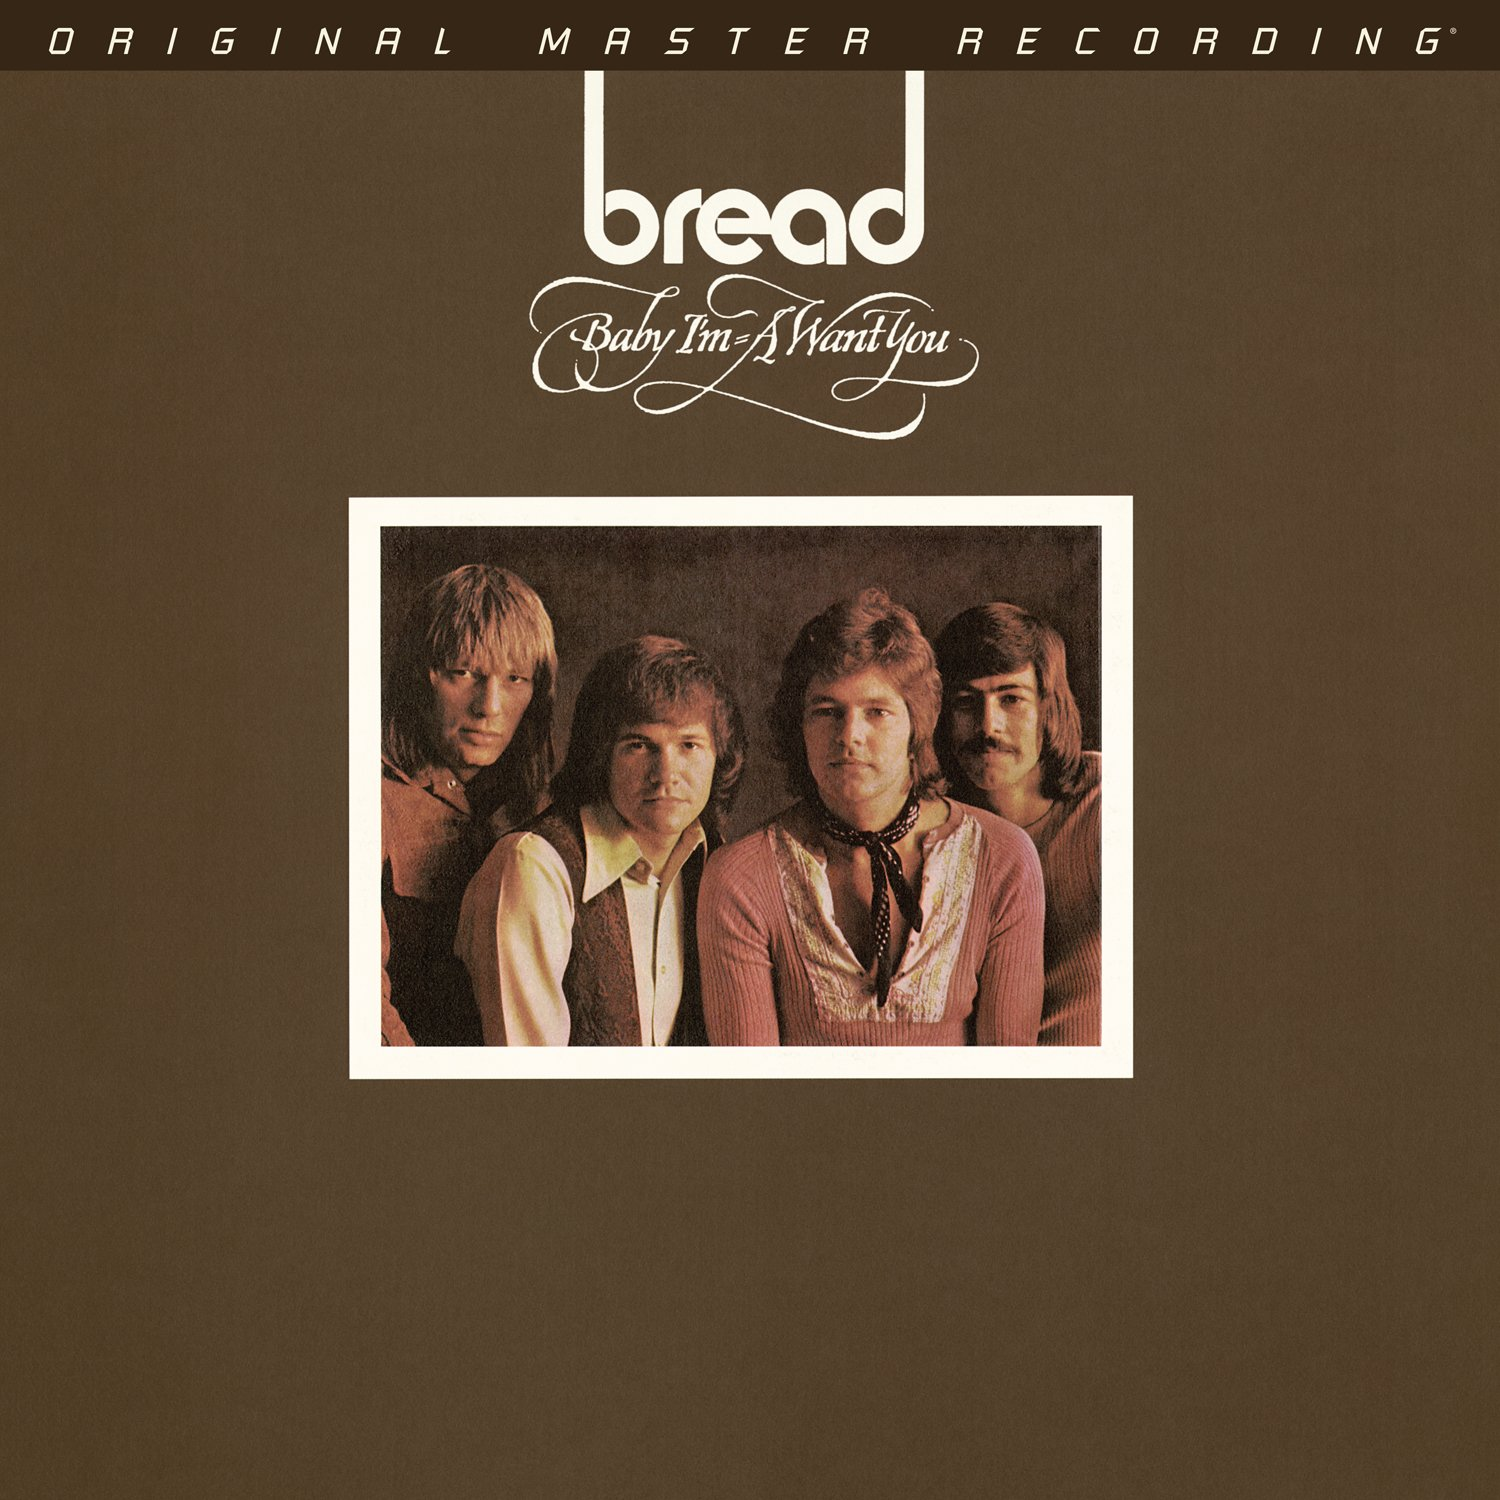 Mobile Fidelity Sound Lab Bread – Baby I'm-A Want You